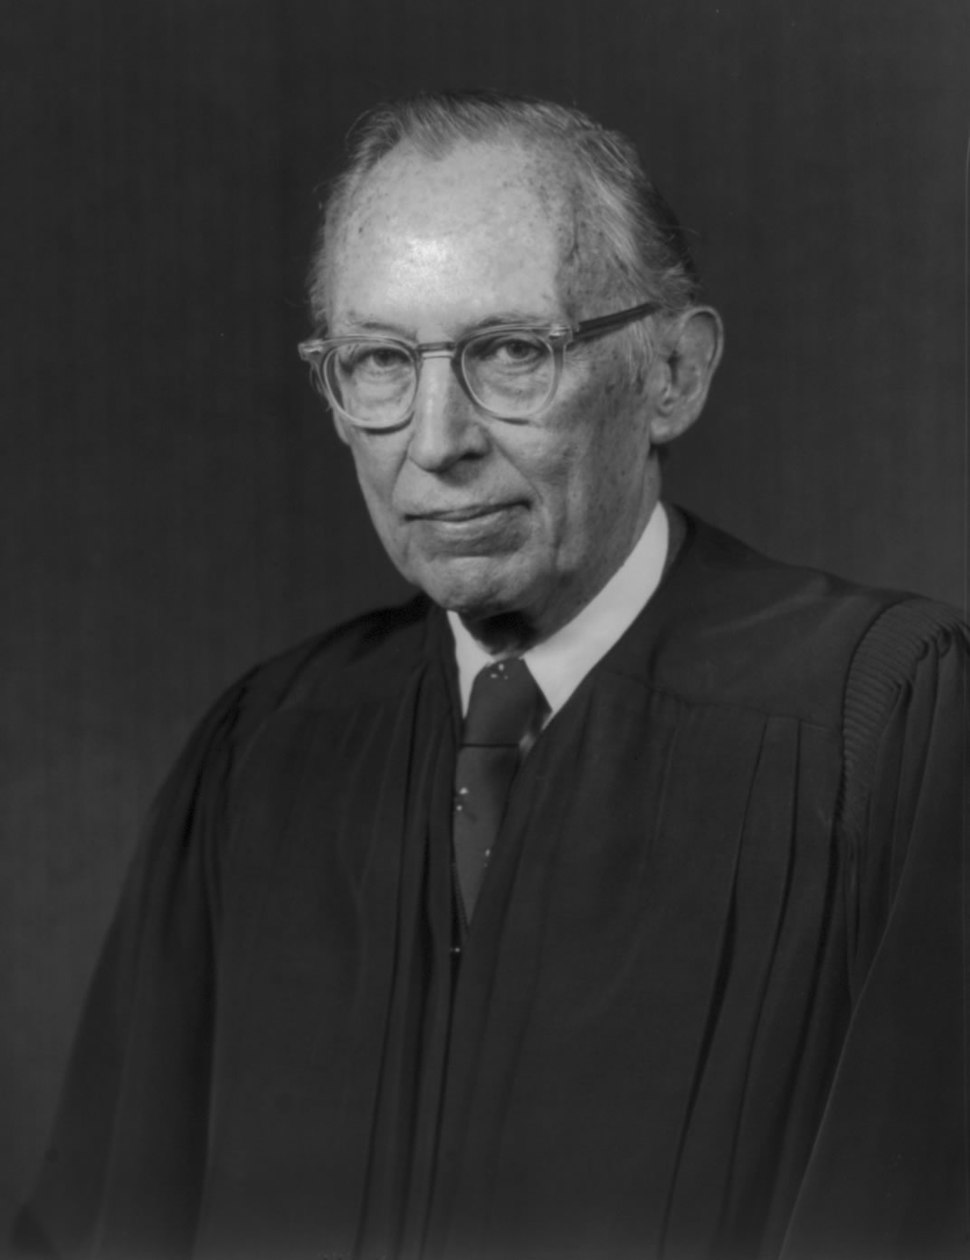 US Supreme Court Justice Lewis Powell - 1976 official portrait